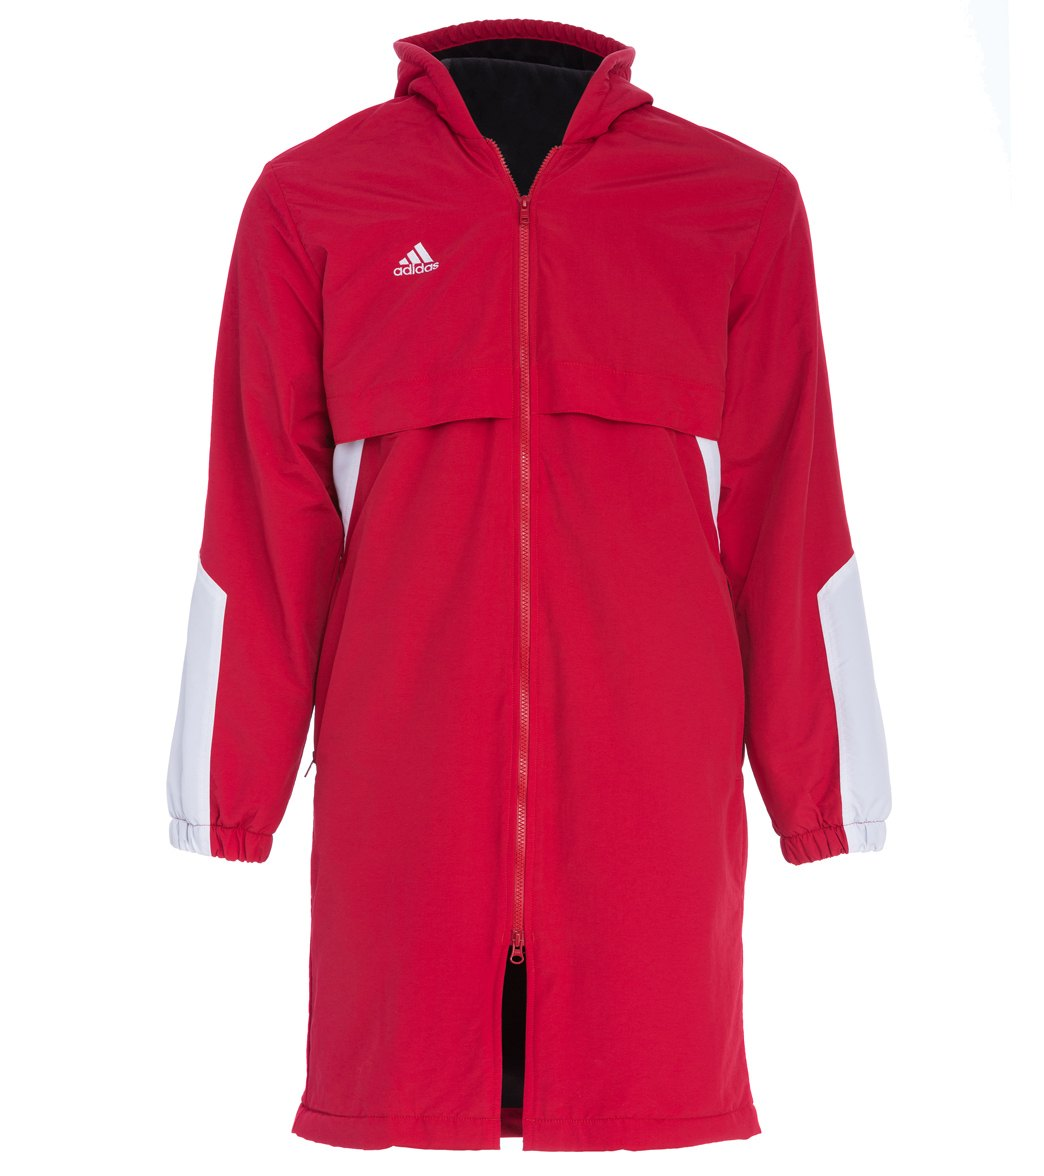 Adidas Parka at SwimOutlet.com - Free Shipping